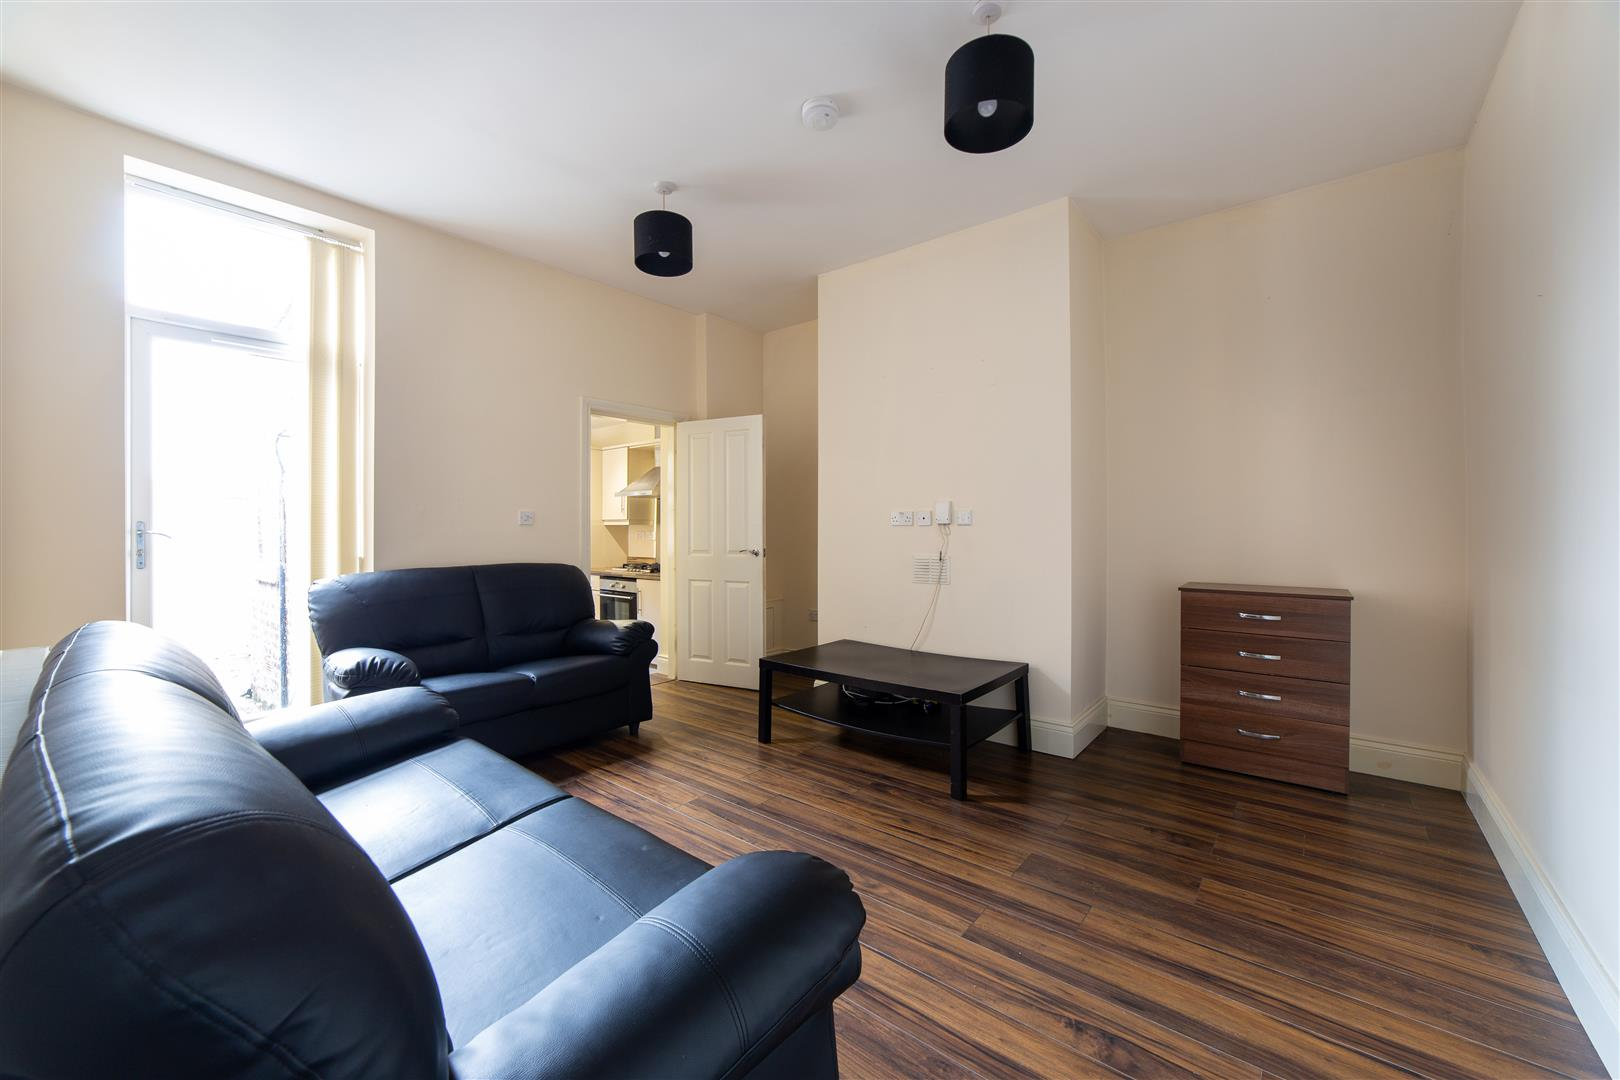 2 bed flat to rent in Newcastle Upon Tyne, NE6 5DQ, NE6